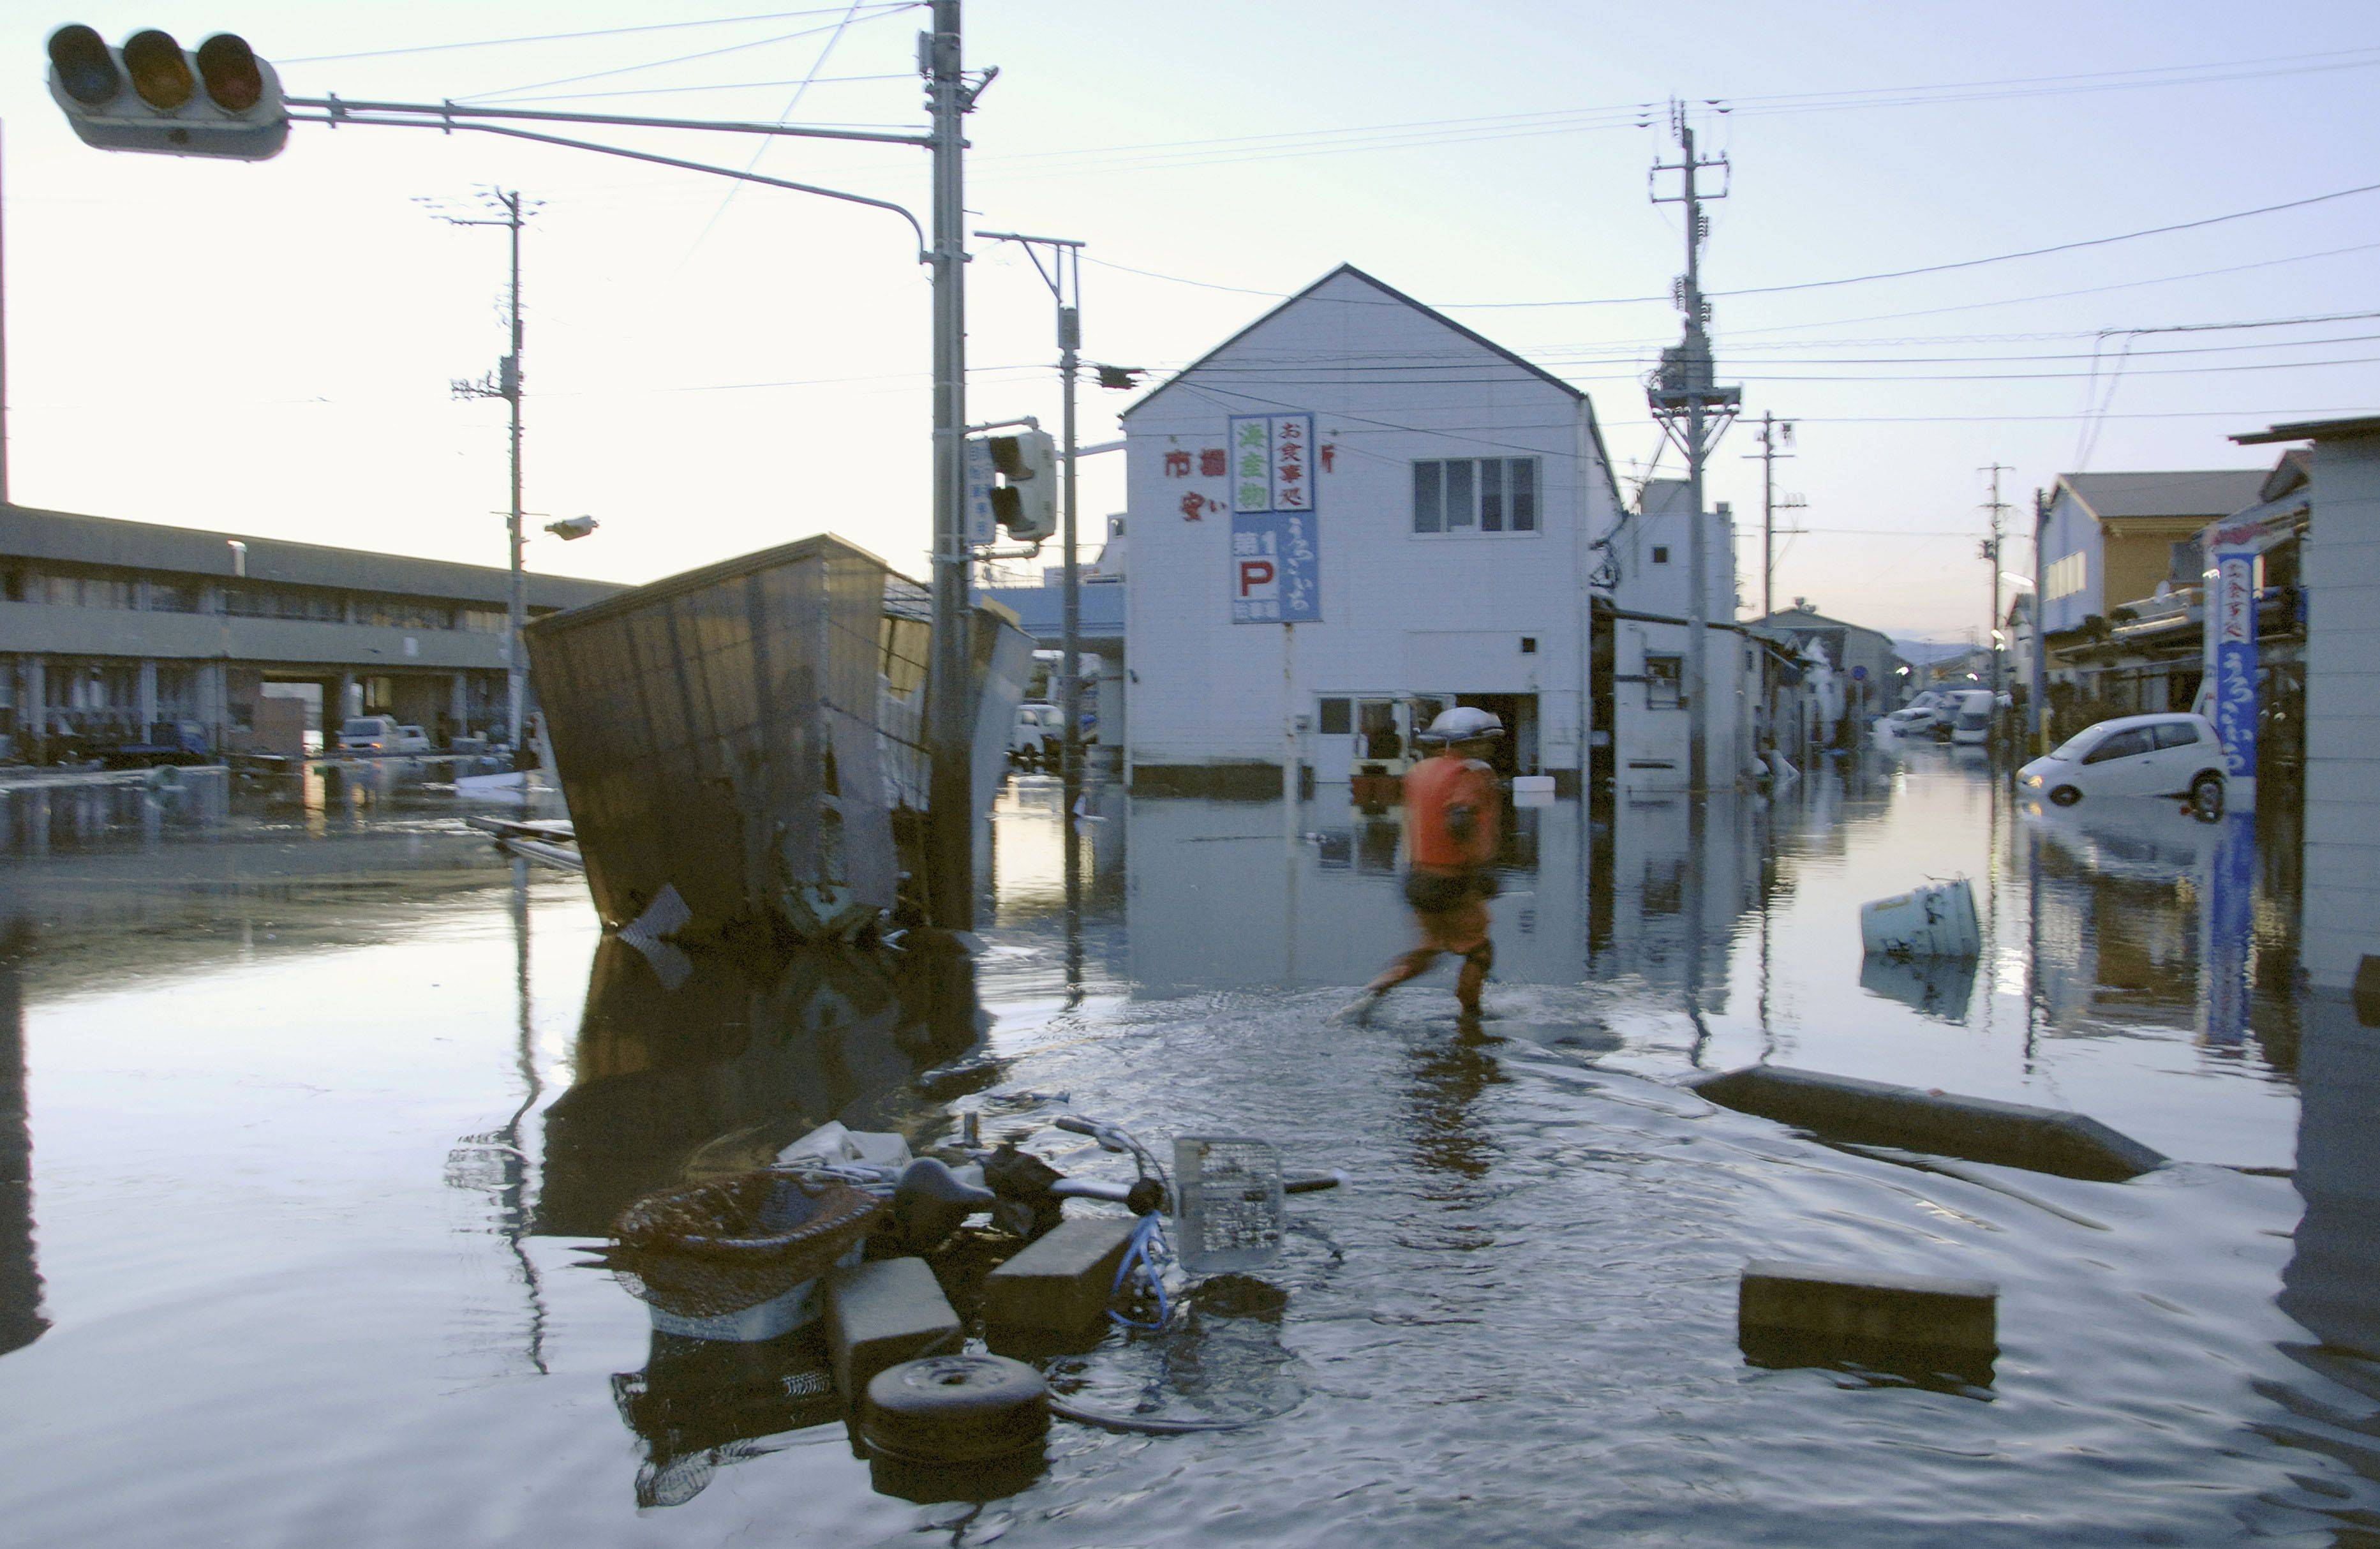 A man wades through a flooded street after tsunami spawned by a powerful earthquake in Iwaki, Fukushima prefecture (state), Japan.